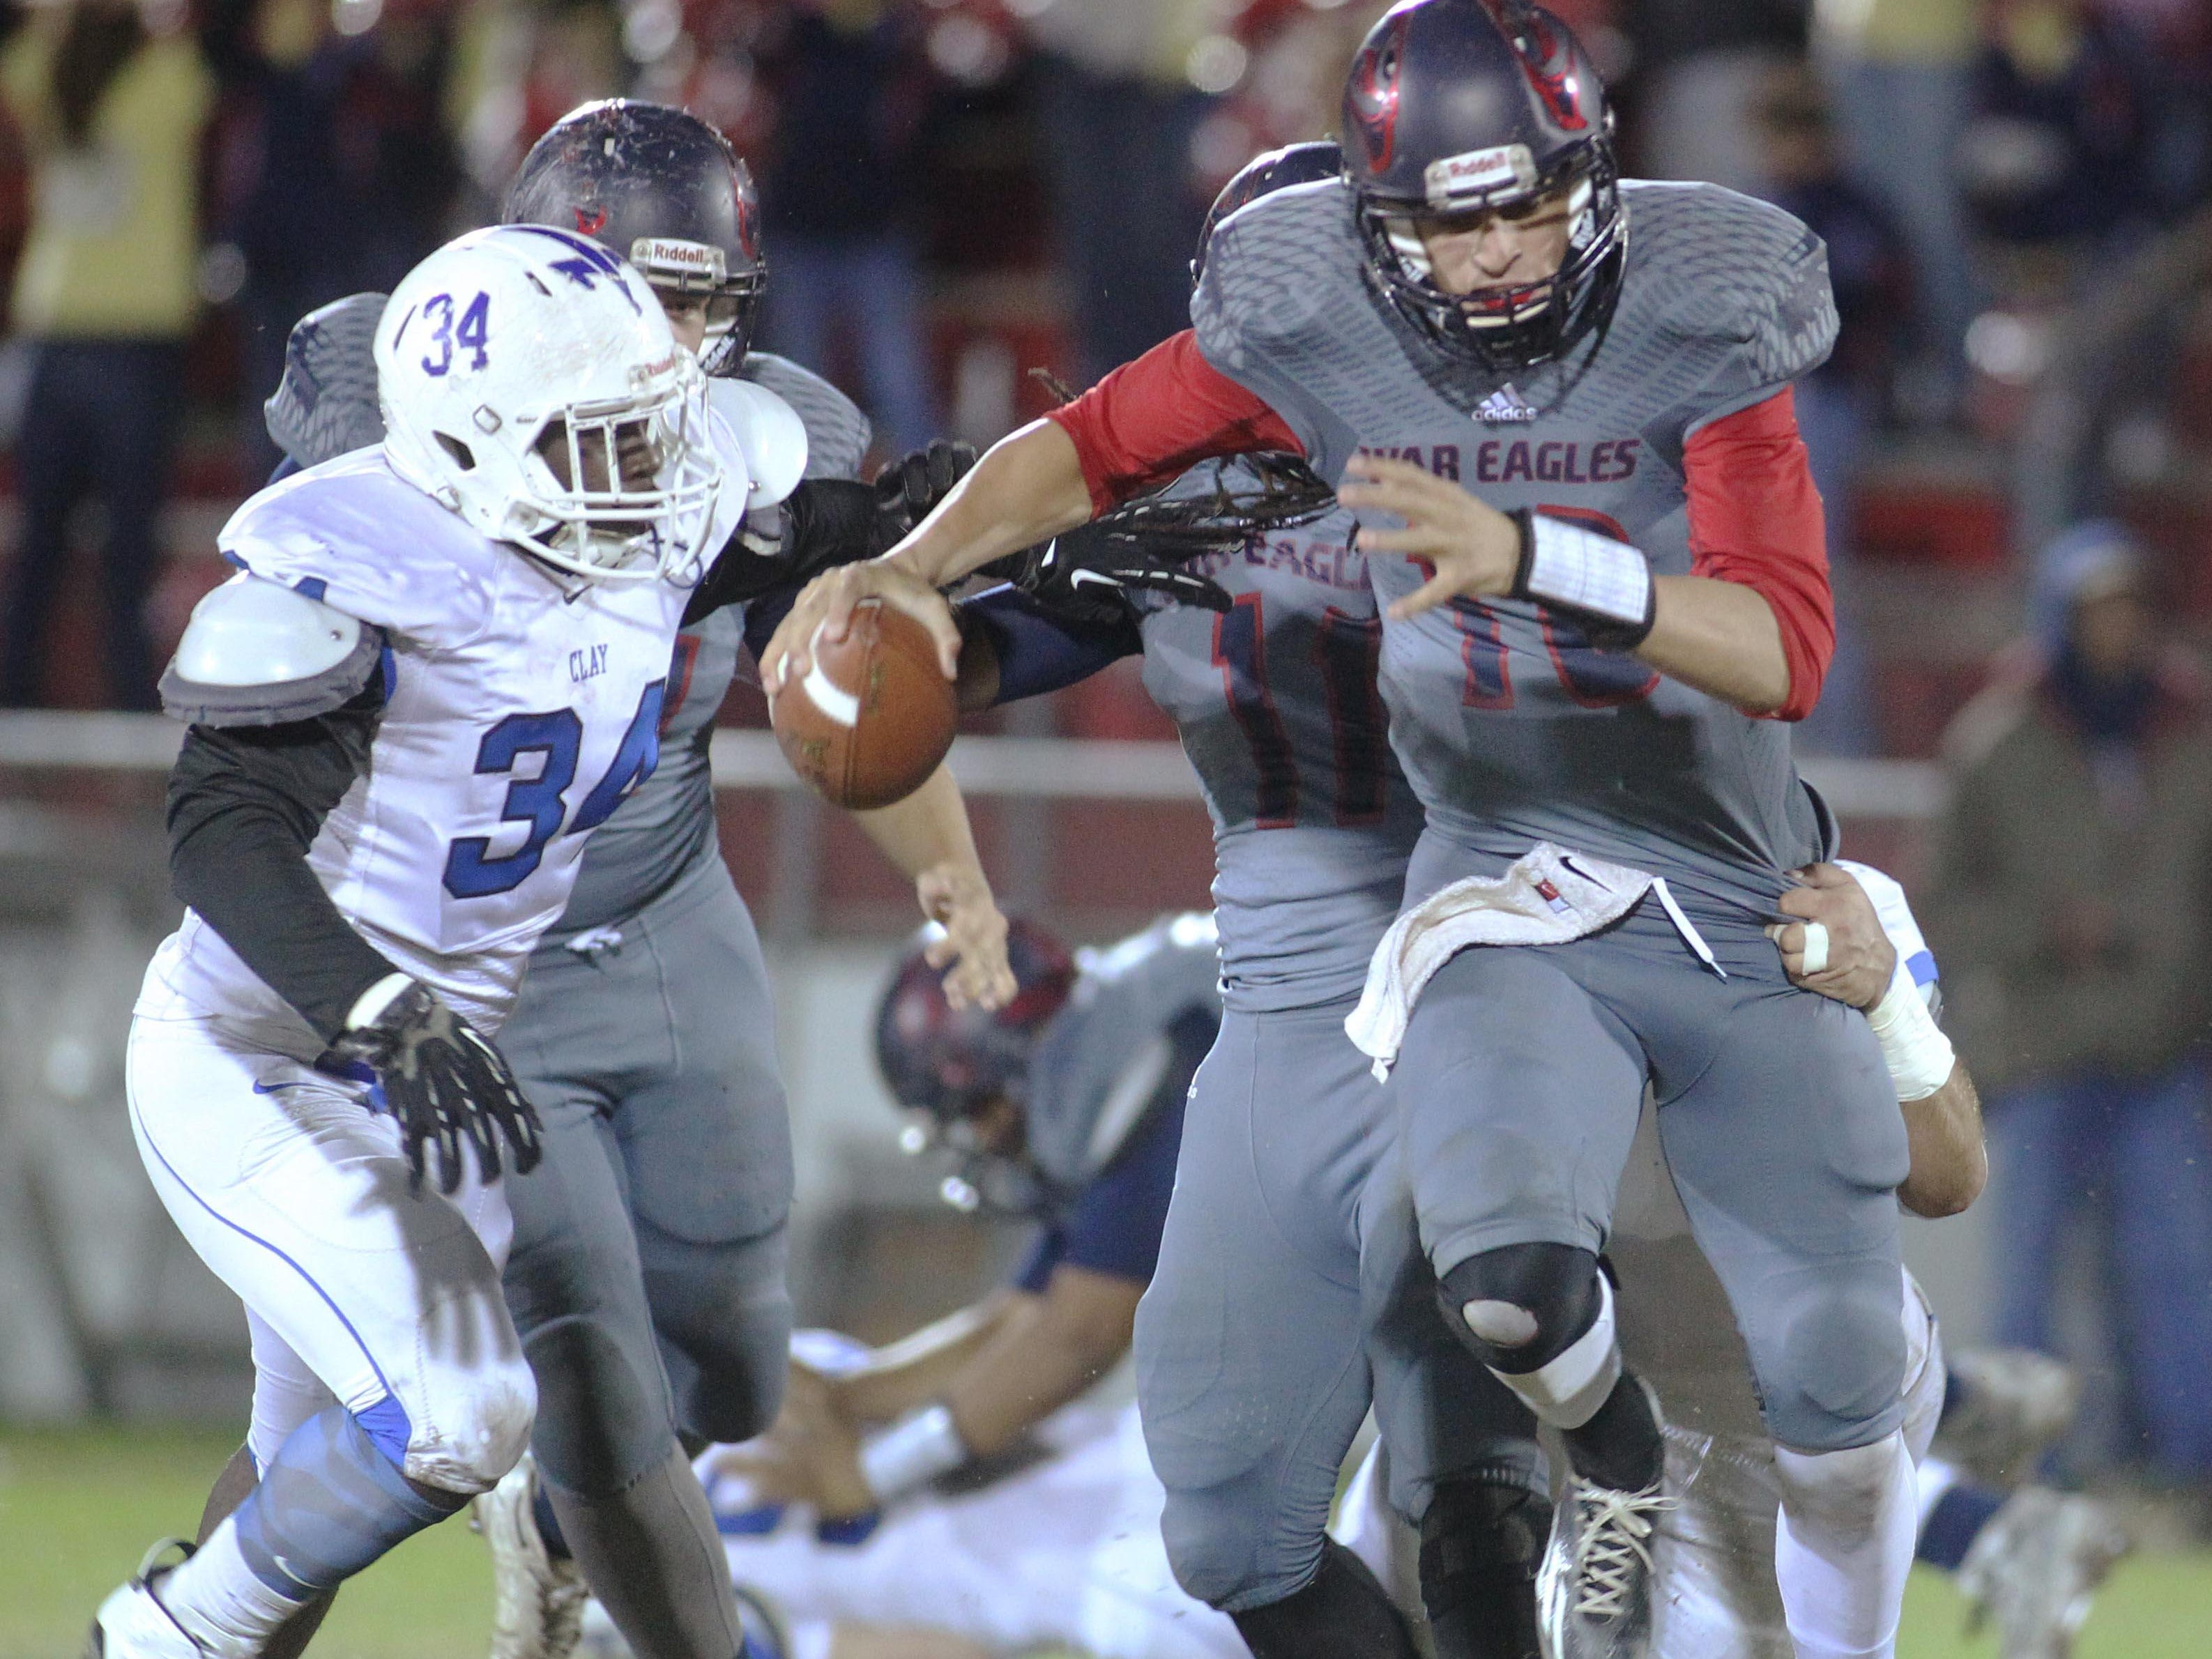 Wakulla quarterback Feleipe Franks rushed for 59 yards and threw for 175 yards and three touchdowns in a 34-24 win over Clay on Friday night in the Class 5A state semifinals.